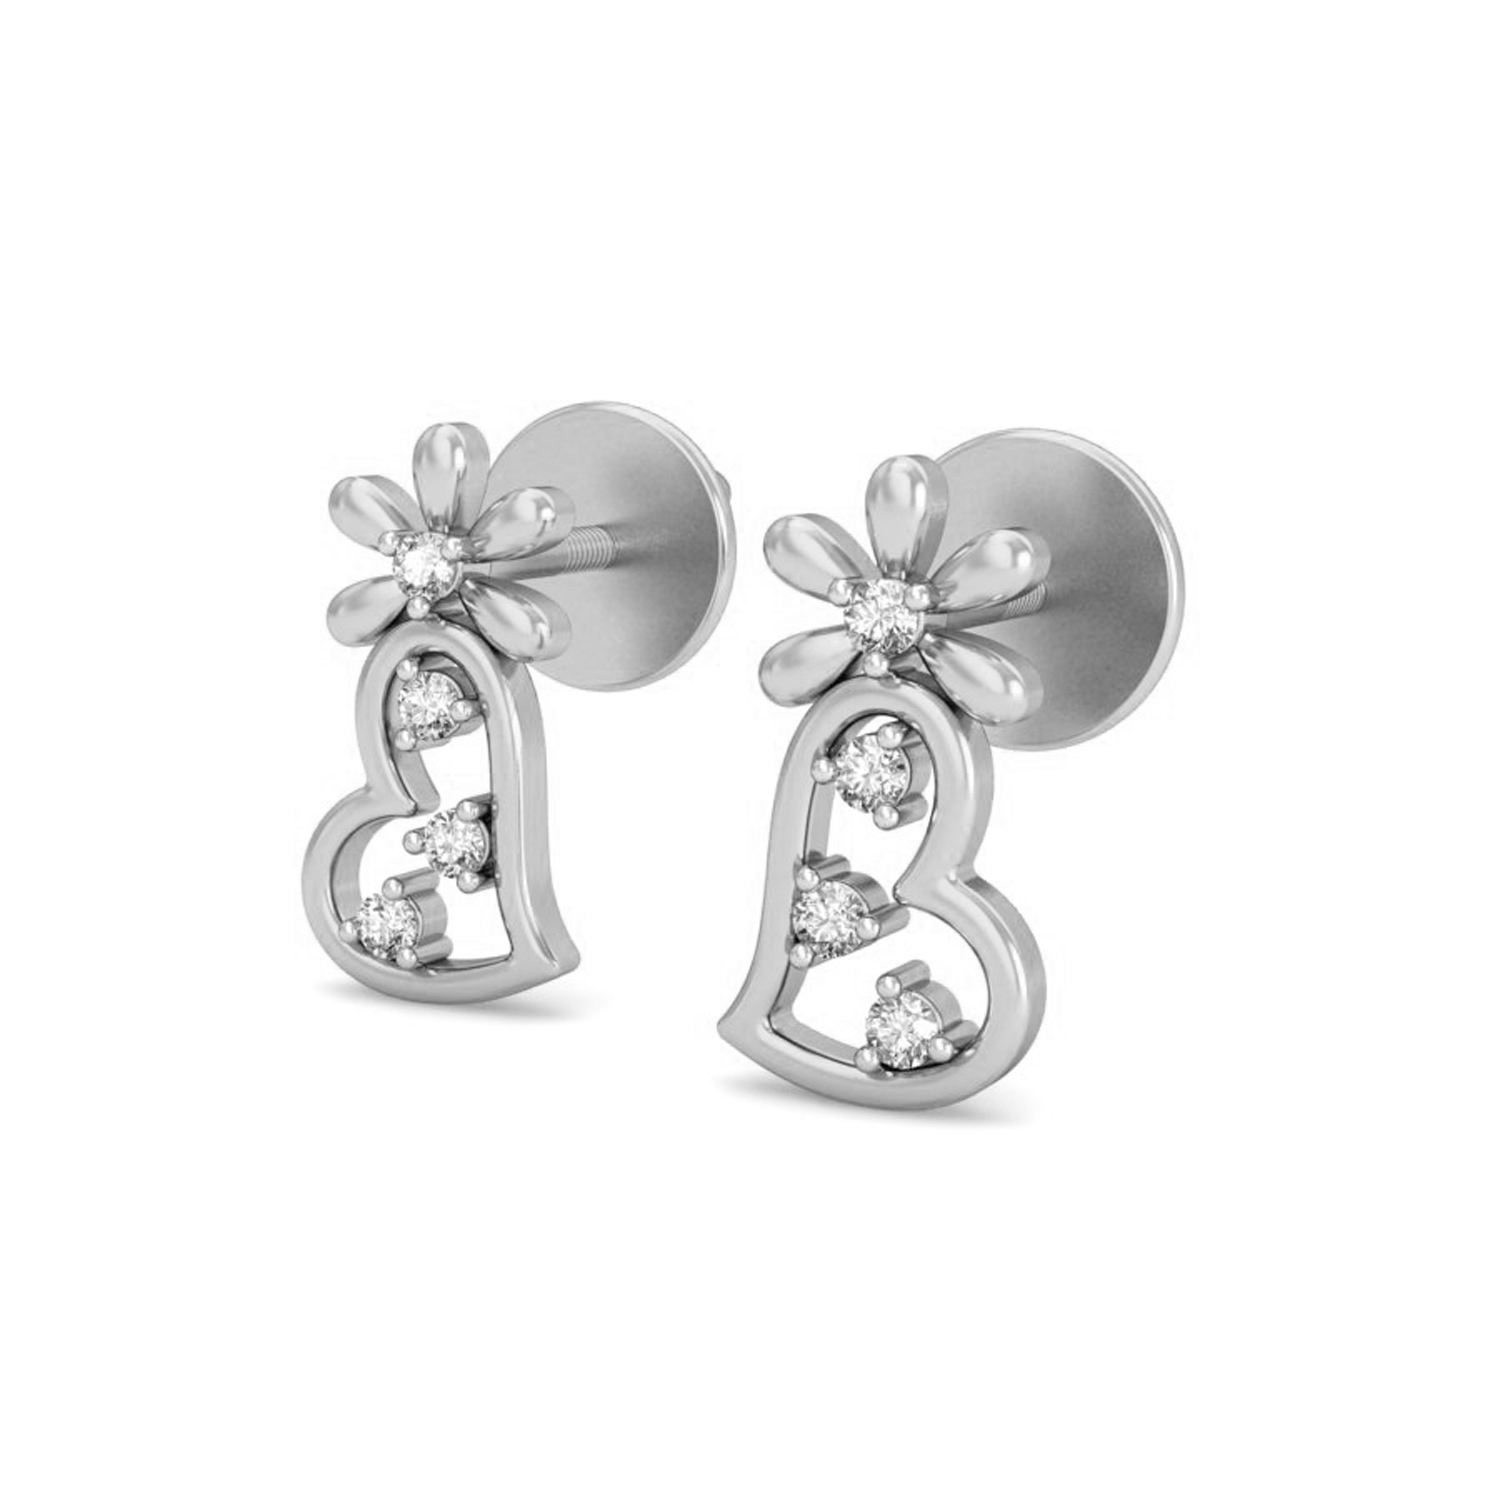 wedding silver ears sensitive sirios earrings women for heart shaped girls studs